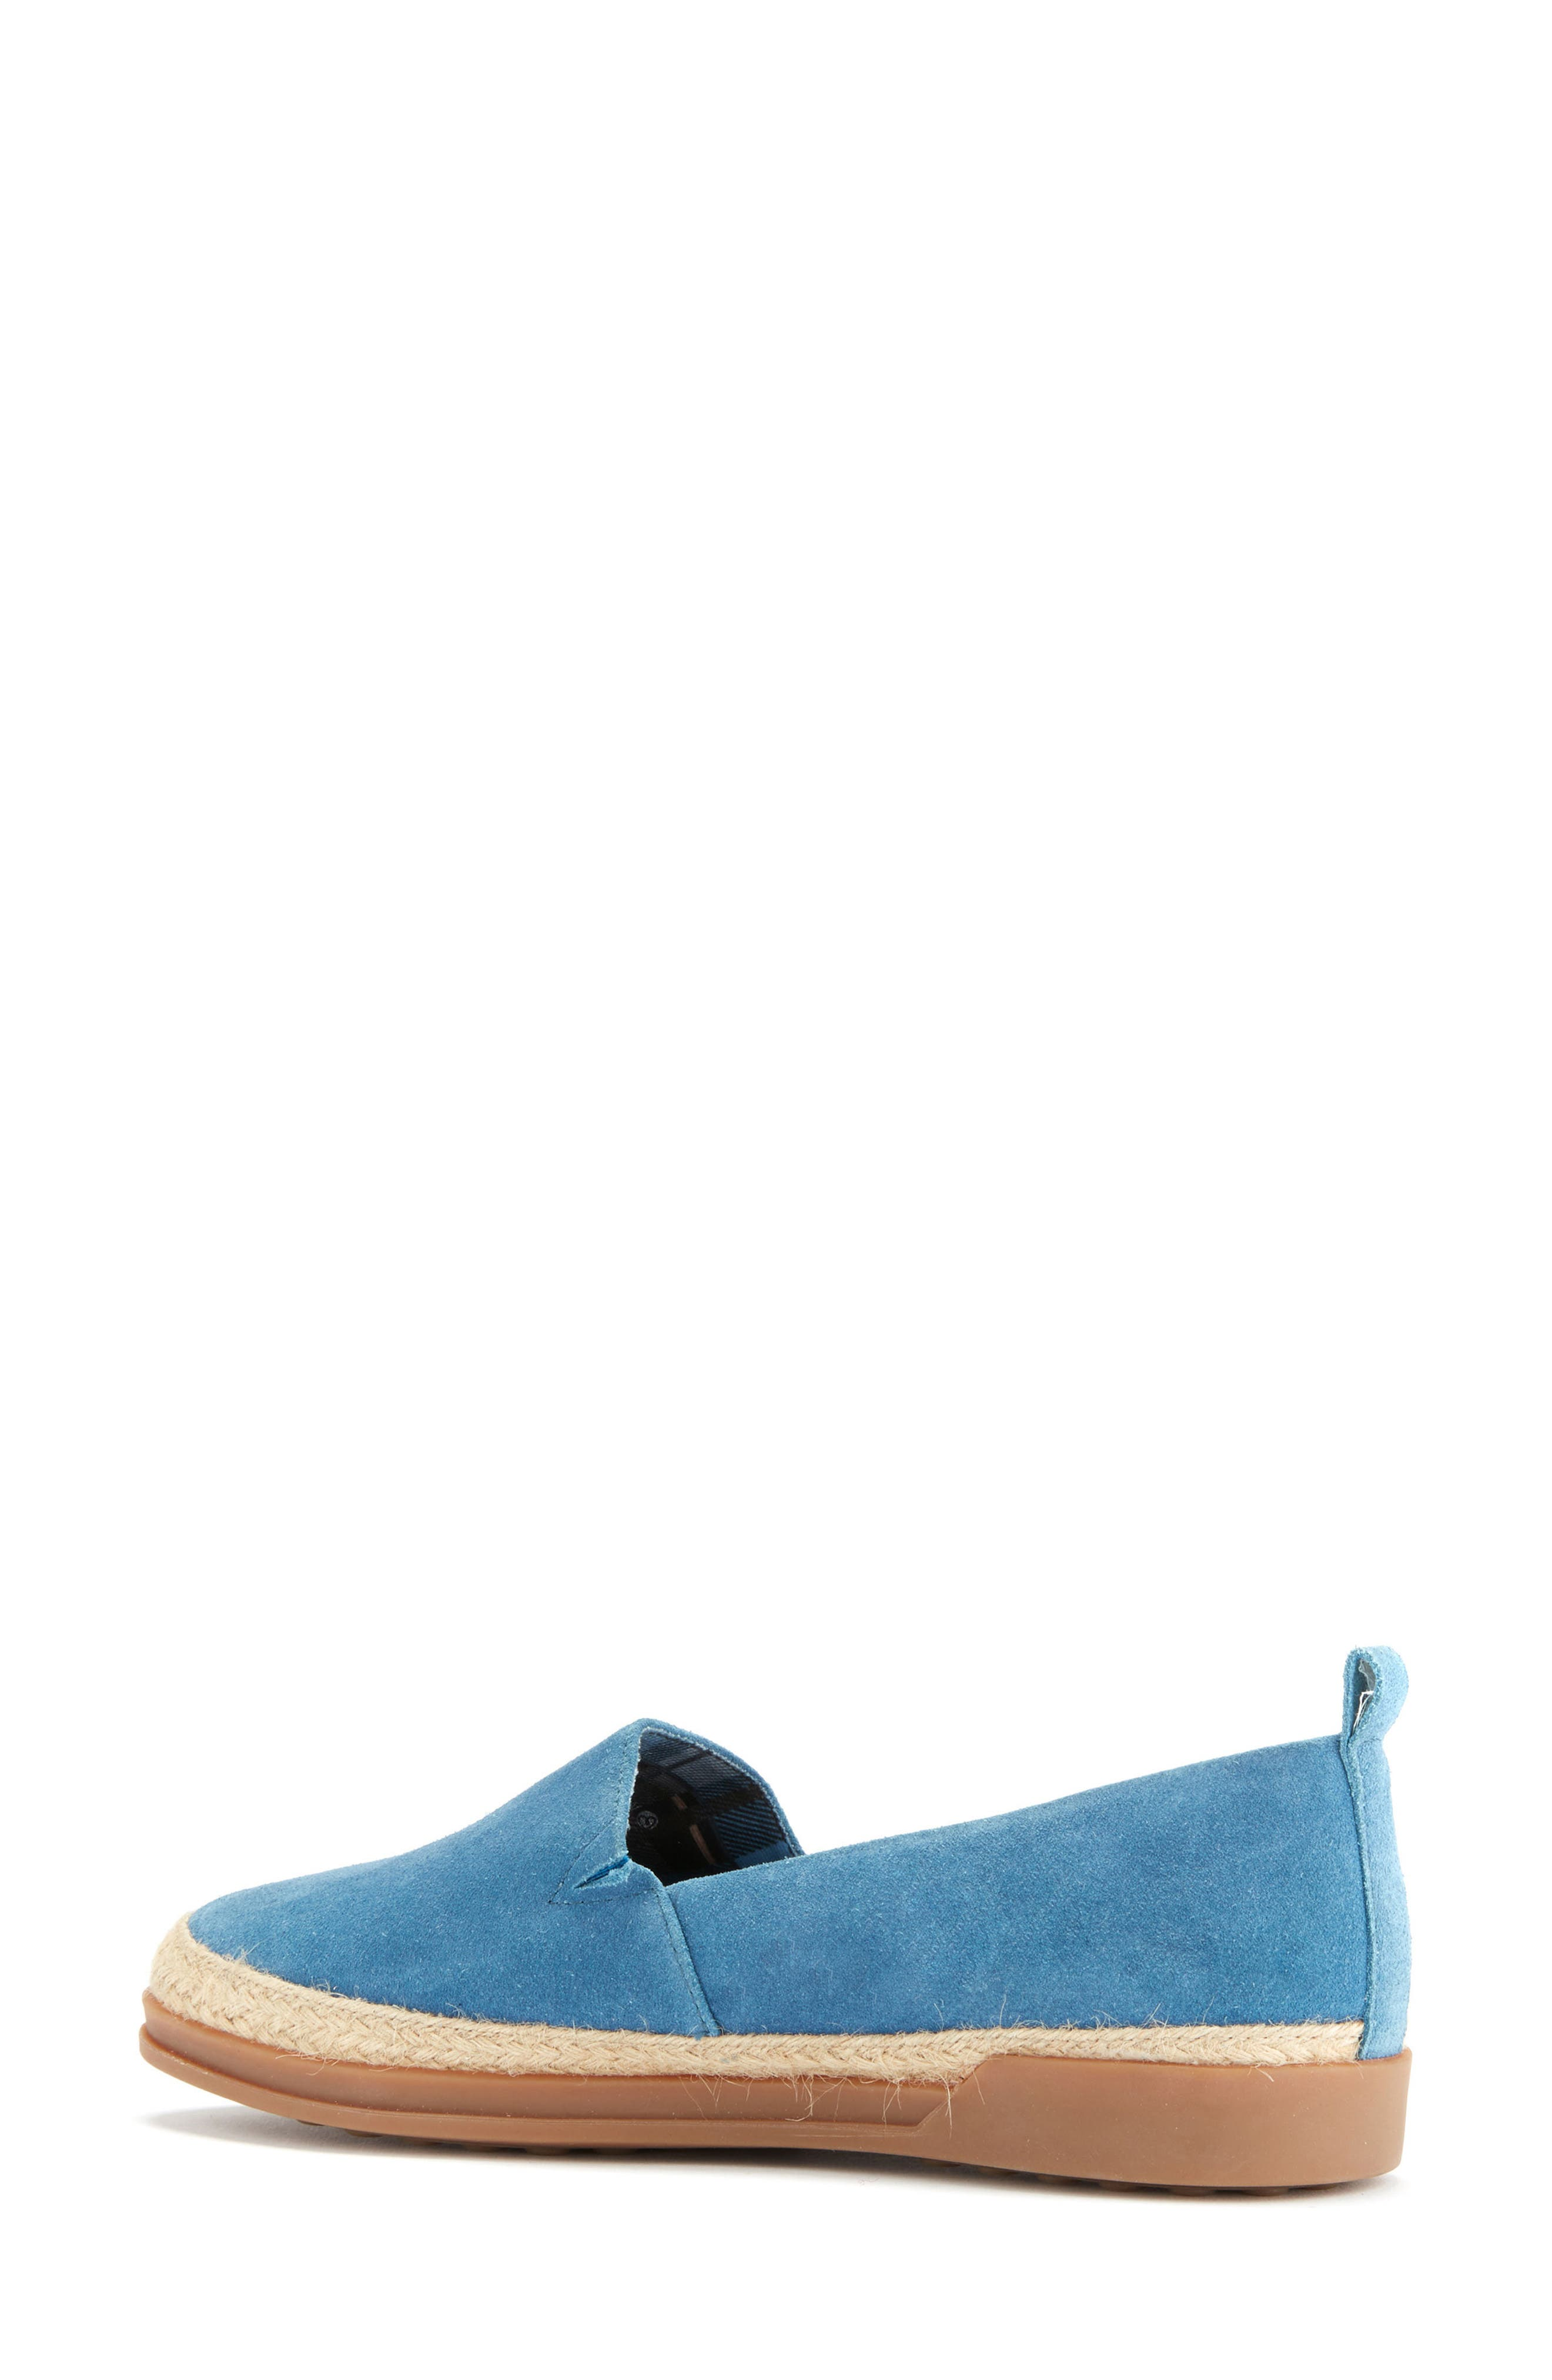 Bailey Espadrille Flat,                             Alternate thumbnail 2, color,                             Blue Suede